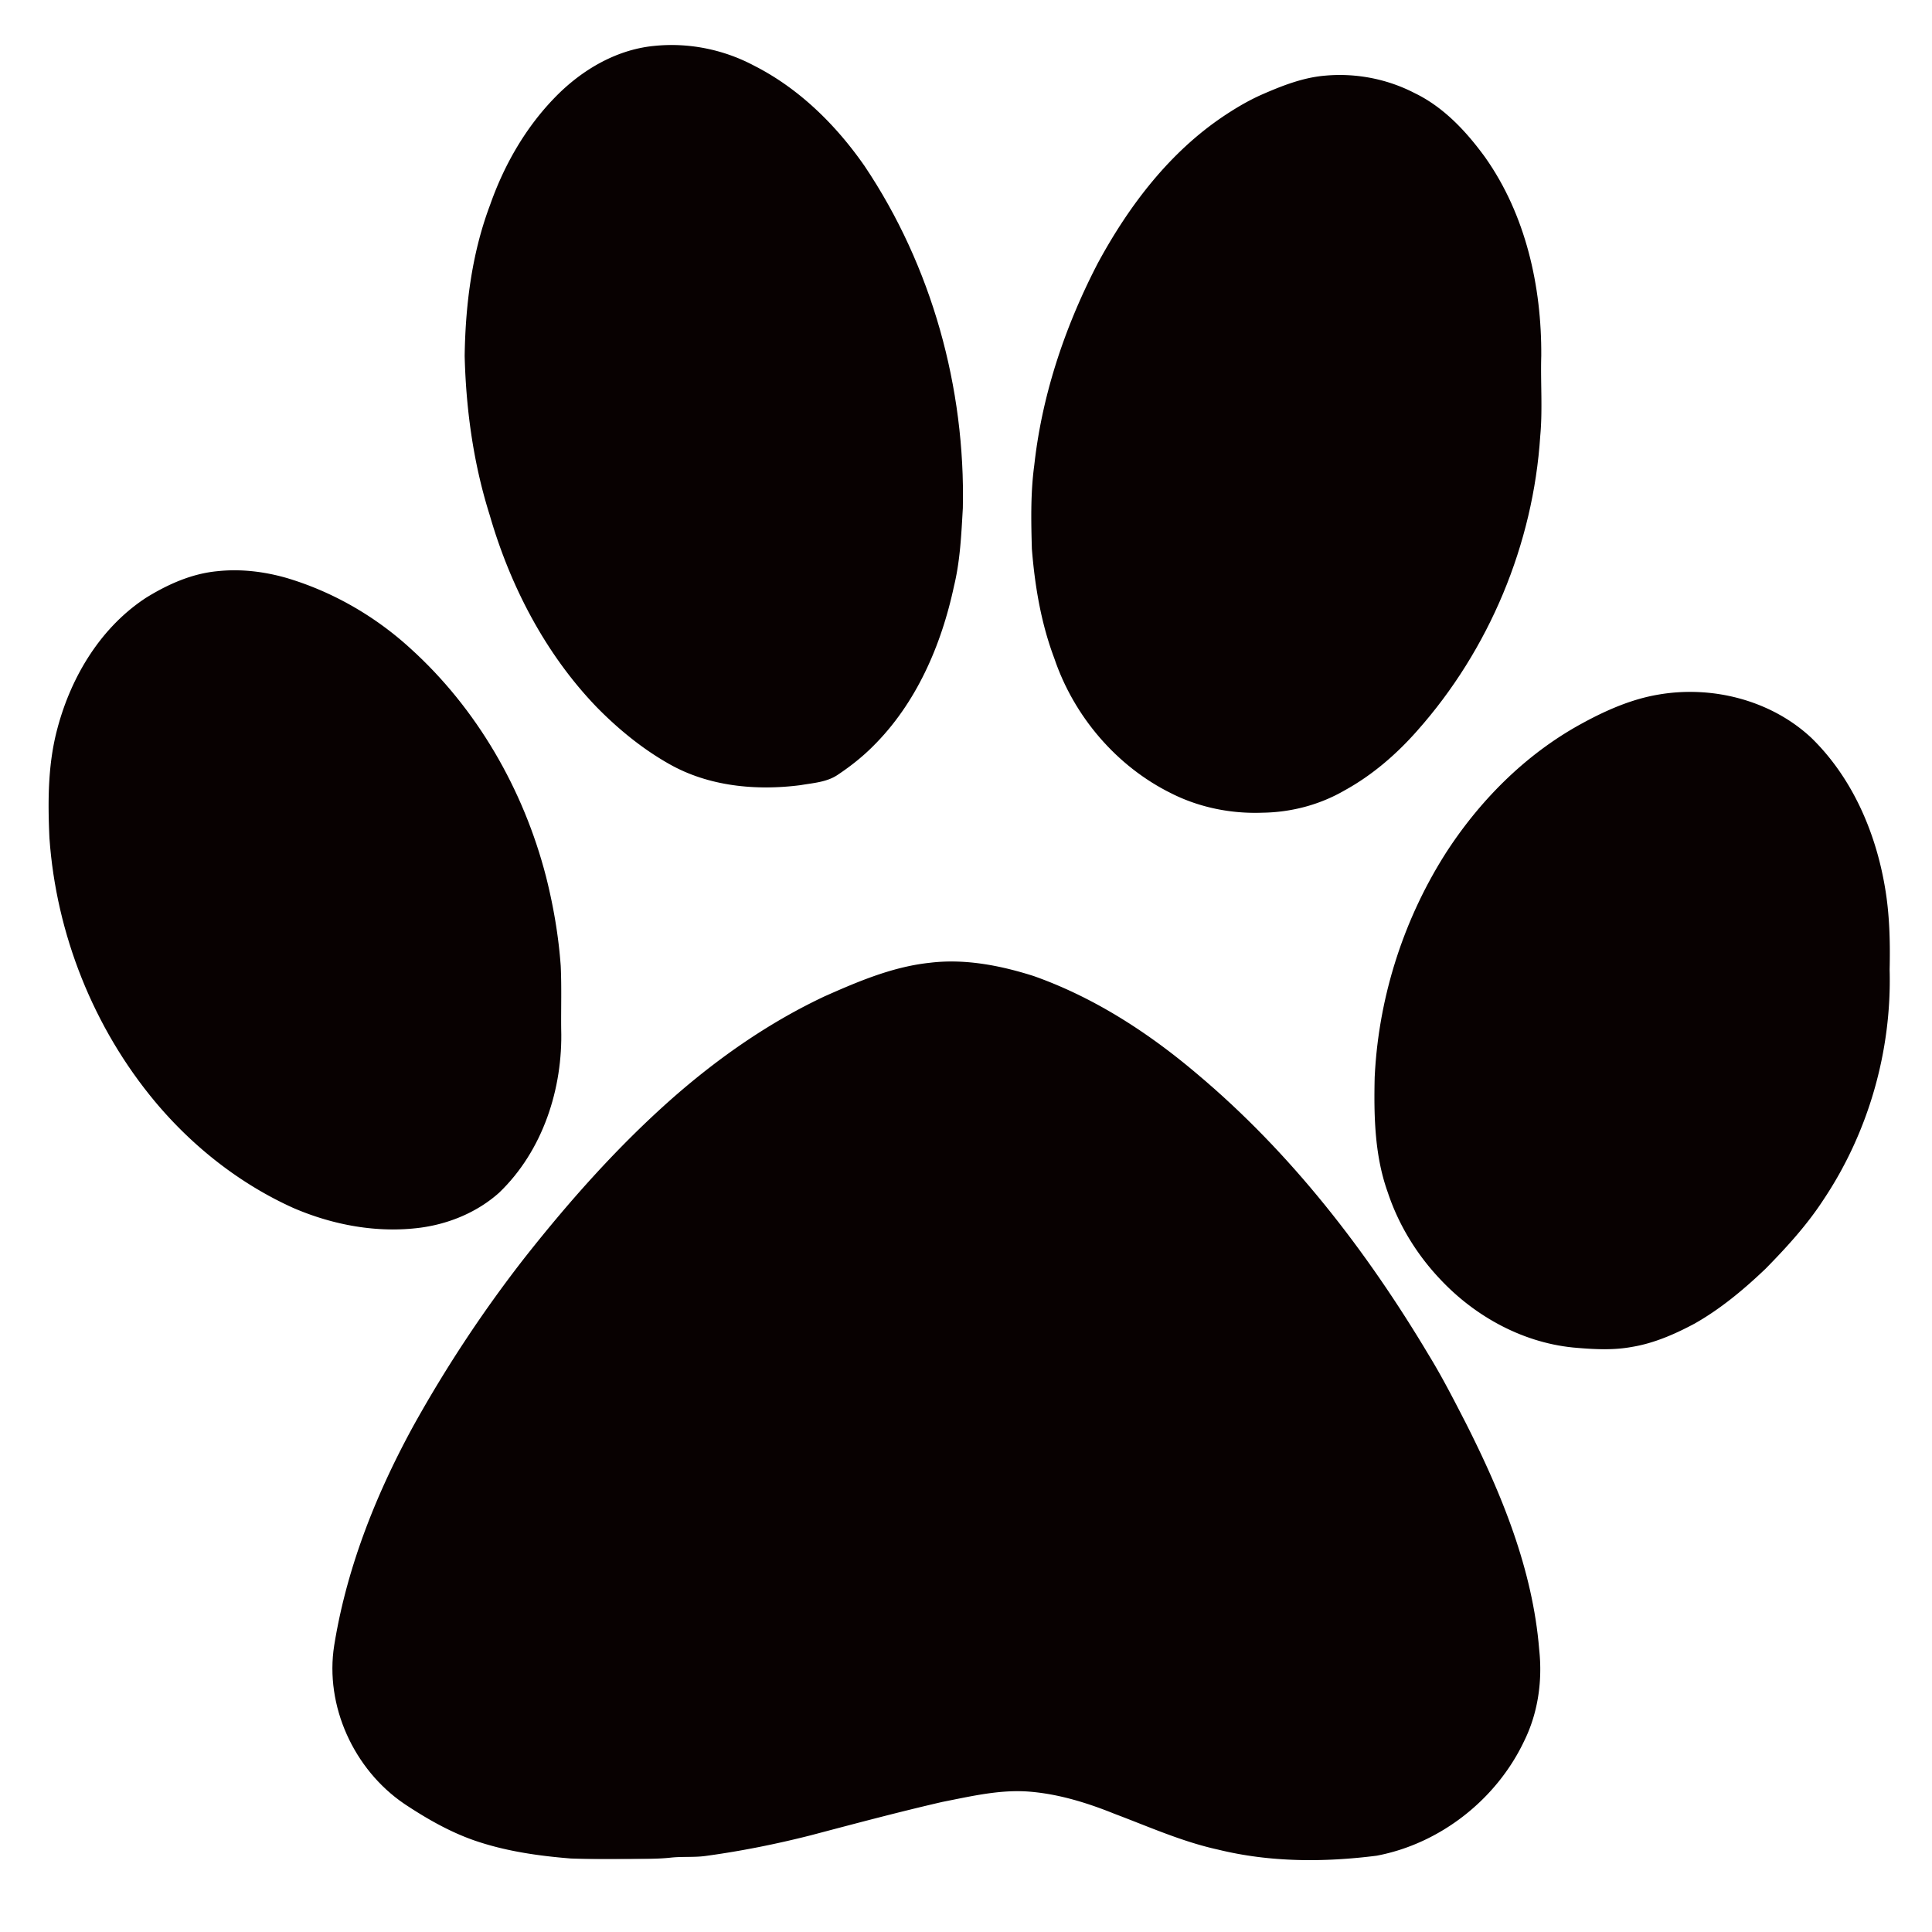 Dog paw prints panther paw print clip art clipart locker.